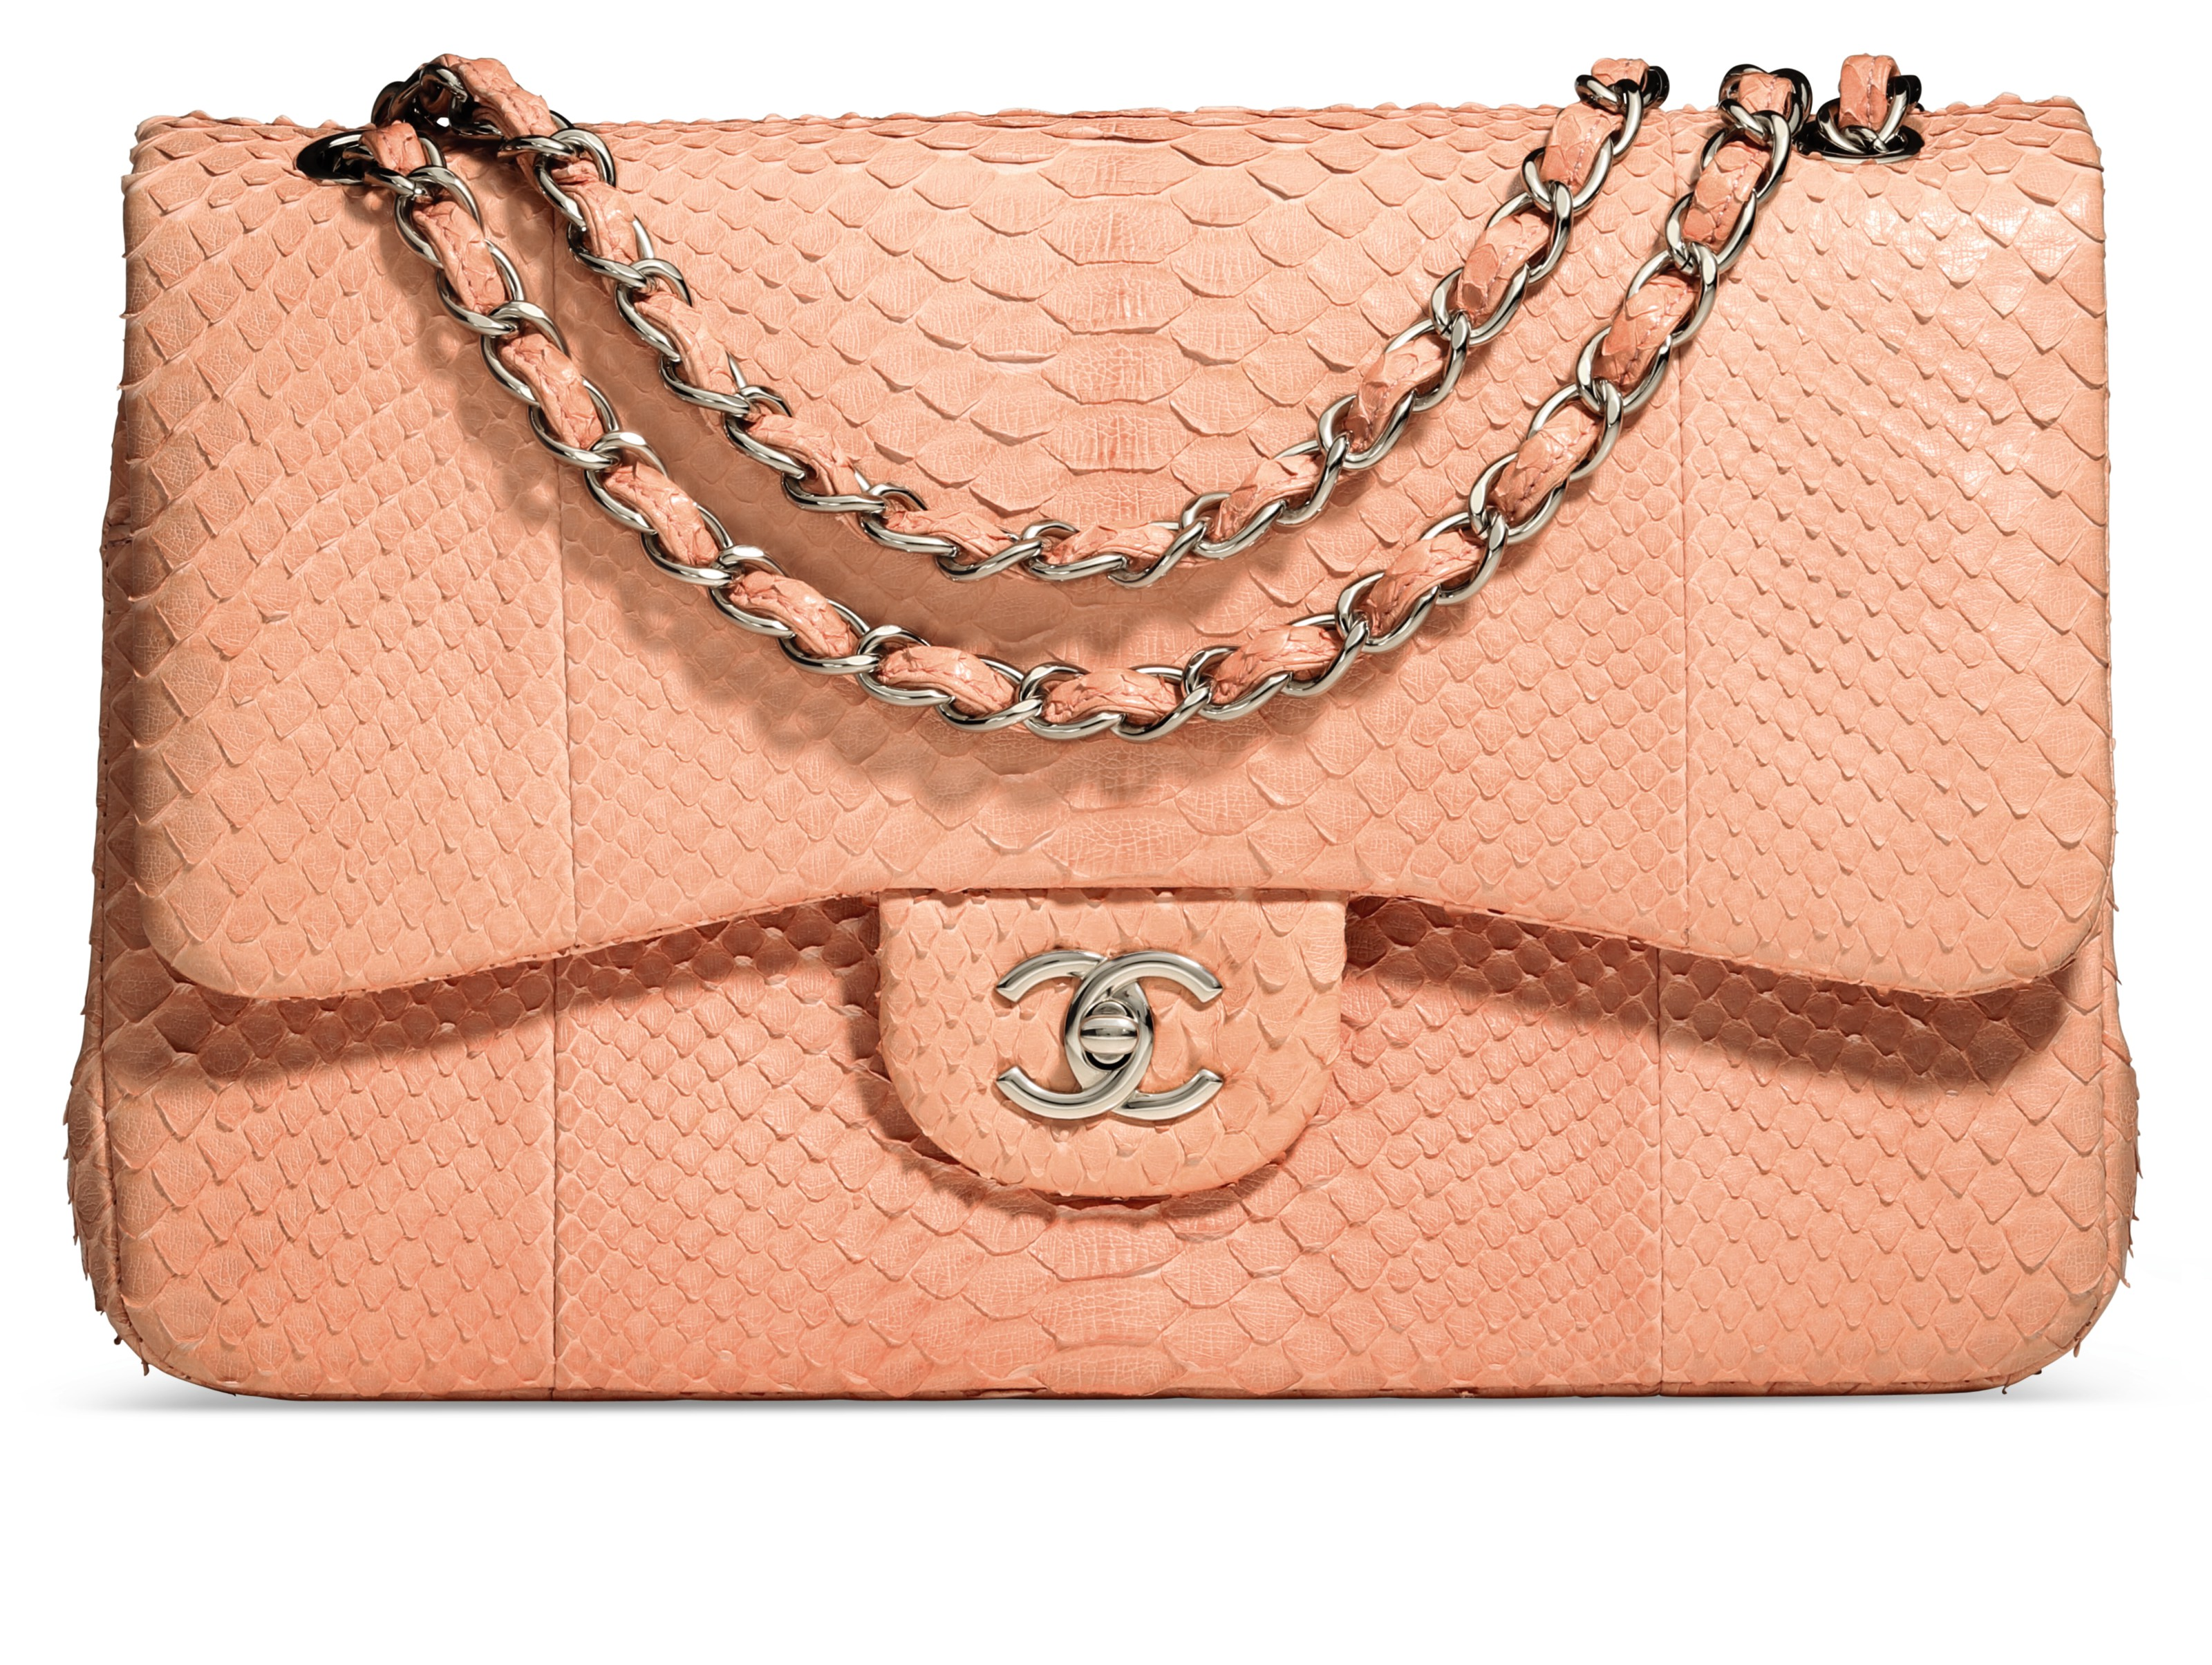 c607dbfde2d1 A PINK PYTHON JUMBO DOUBLE FLAP BAG WITH SILVER HARDWARE   CHANEL ...